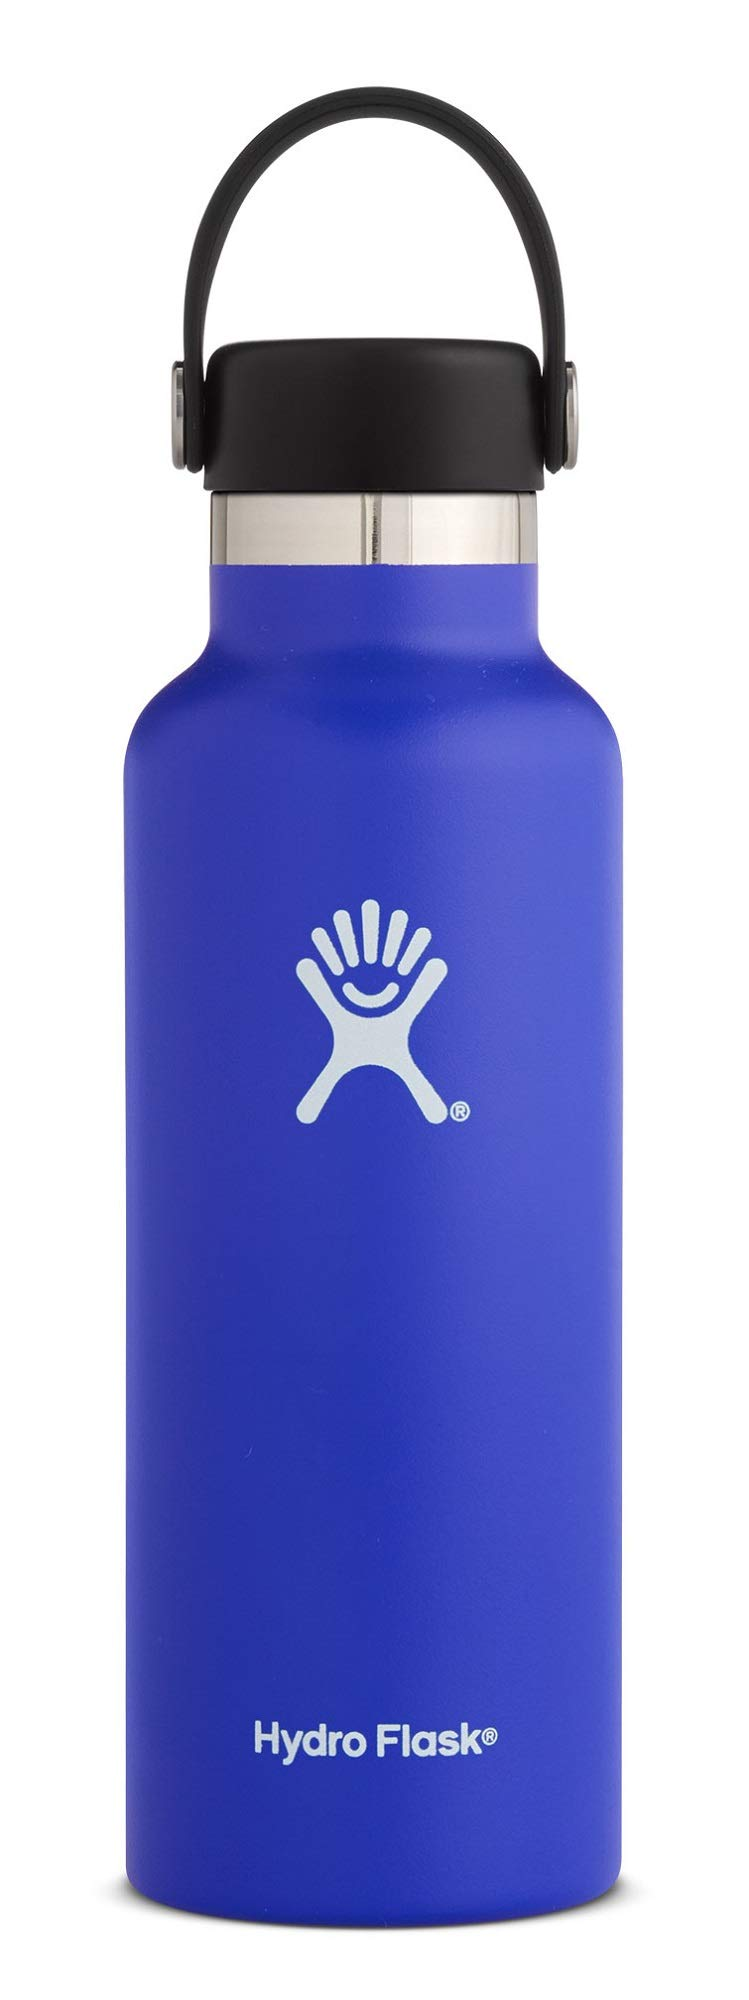 Hydro Flask 18 oz Double Wall Vacuum Insulated Stainless Steel Leak Proof Sports Water Bottle, Standard Mouth with BPA Free Flex Cap, Blueberry